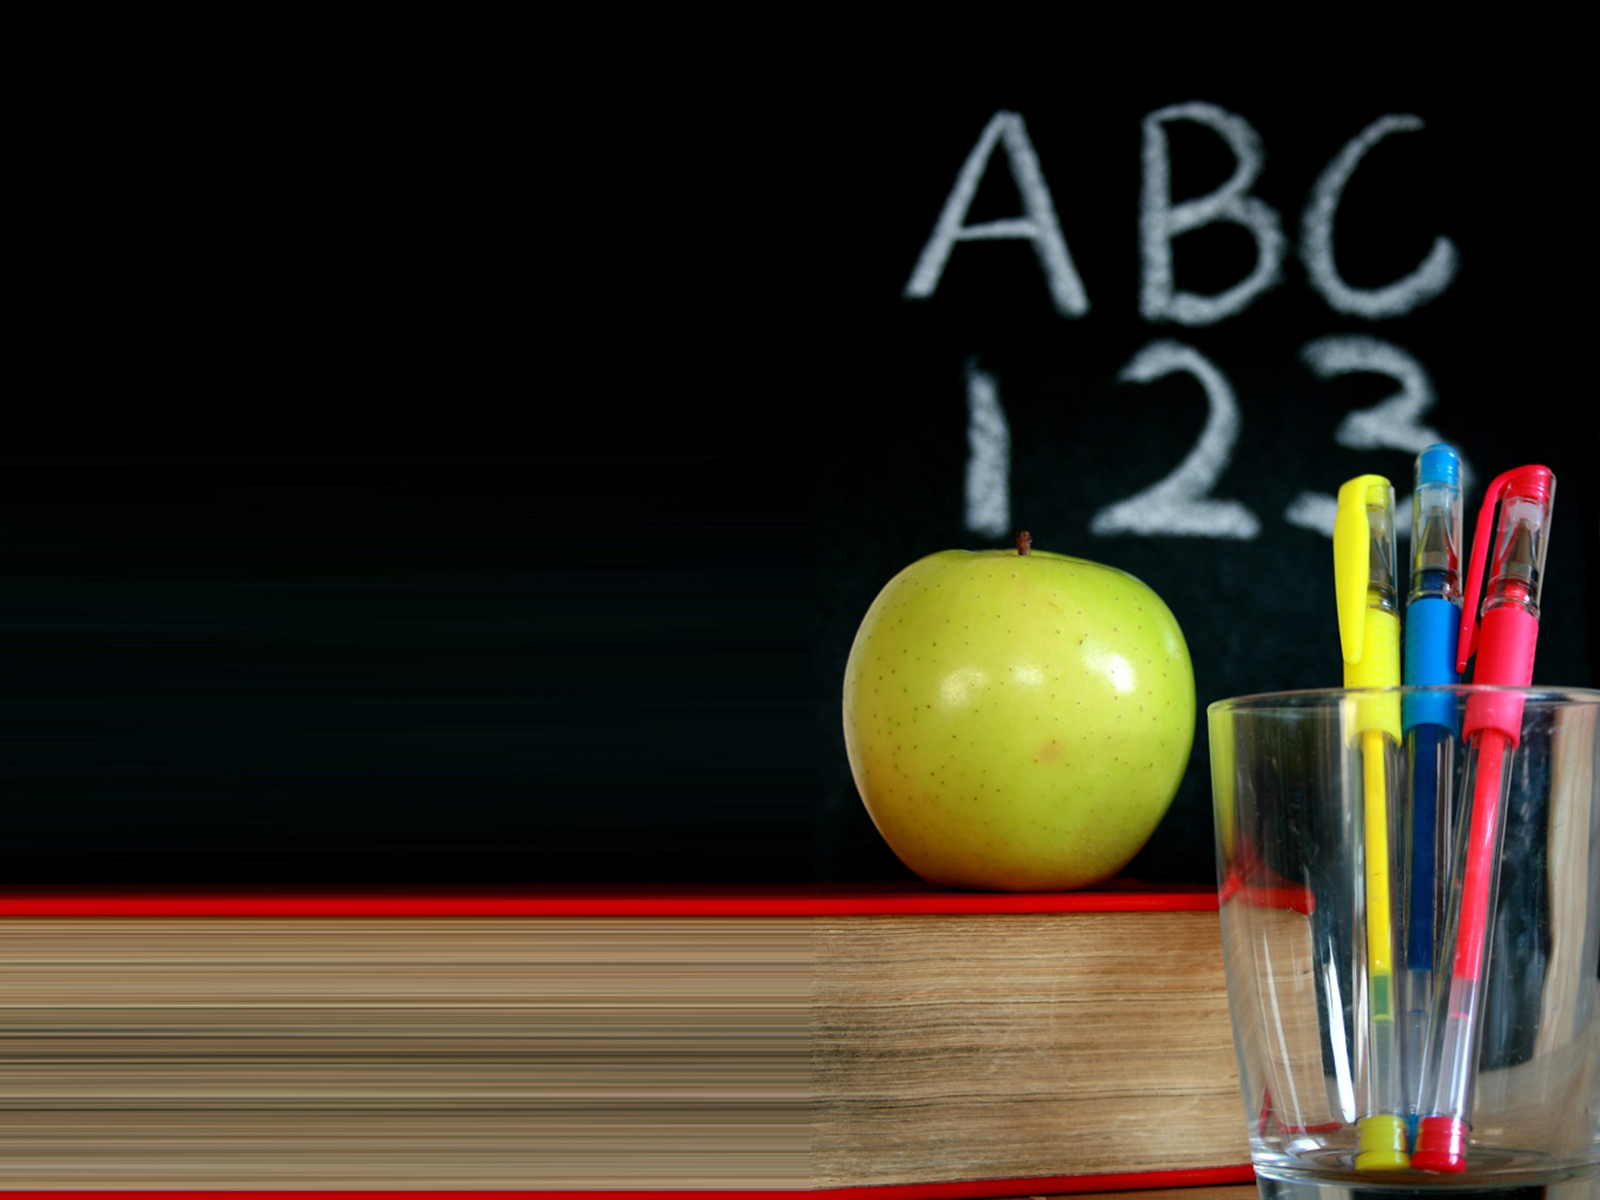 Chalkboard with a green apple and pens backgrounds 1600x1200